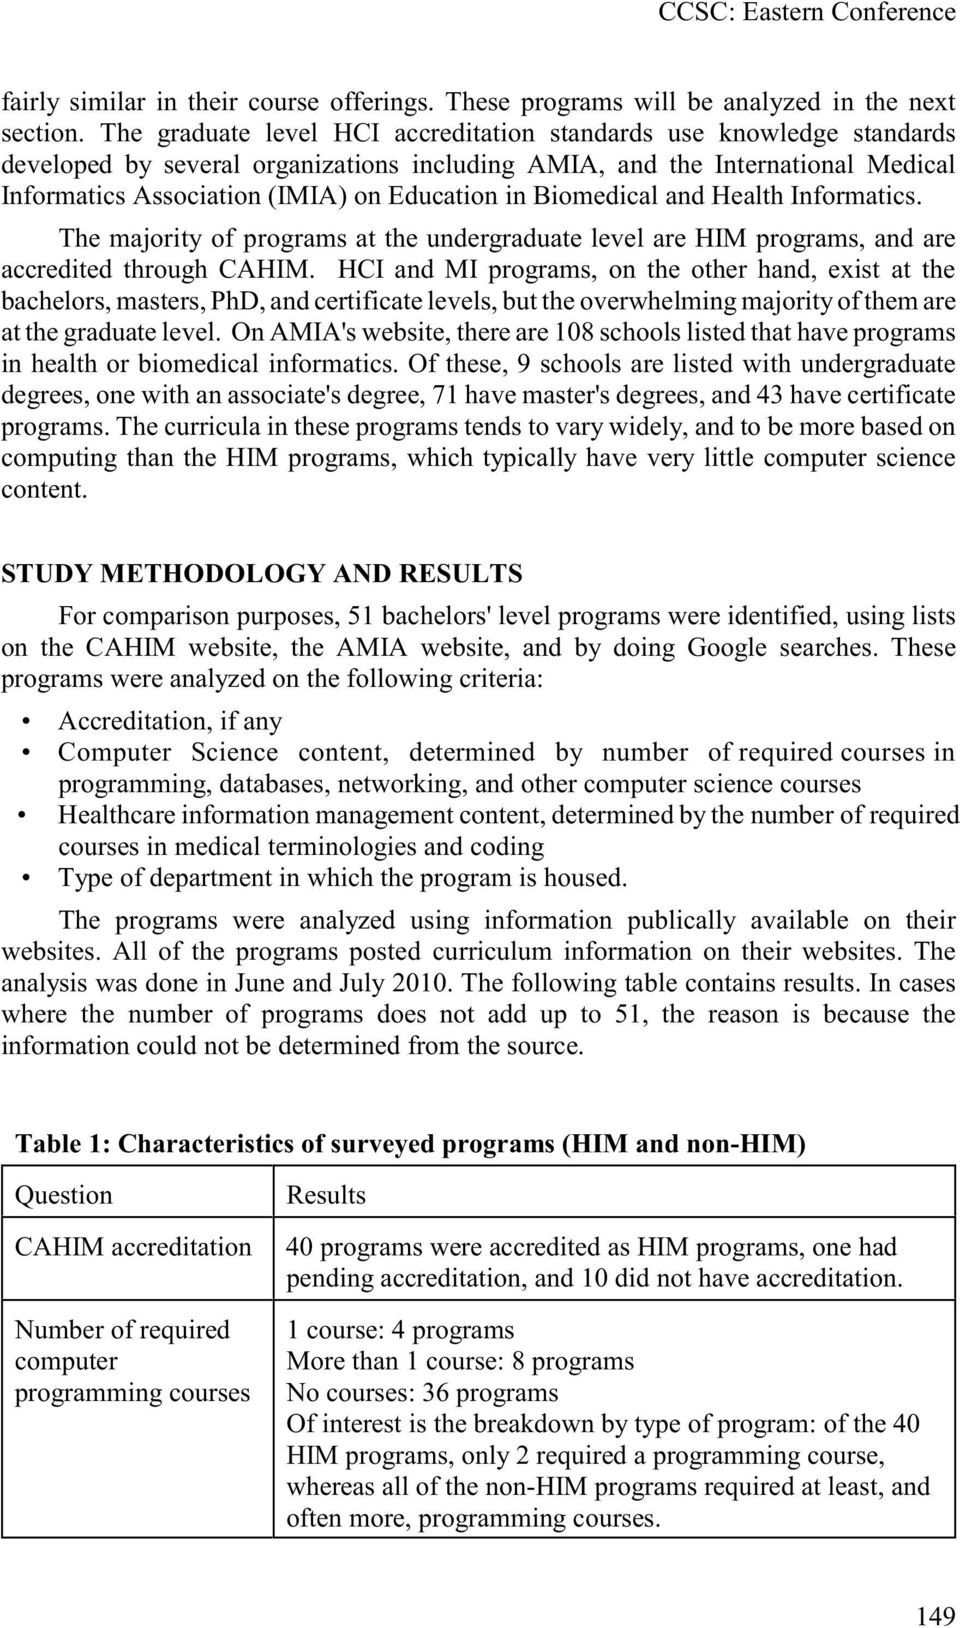 Biomedical and Health Informatics. The majority of programs at the undergraduate level are HIM programs, and are accredited through CAHIM.